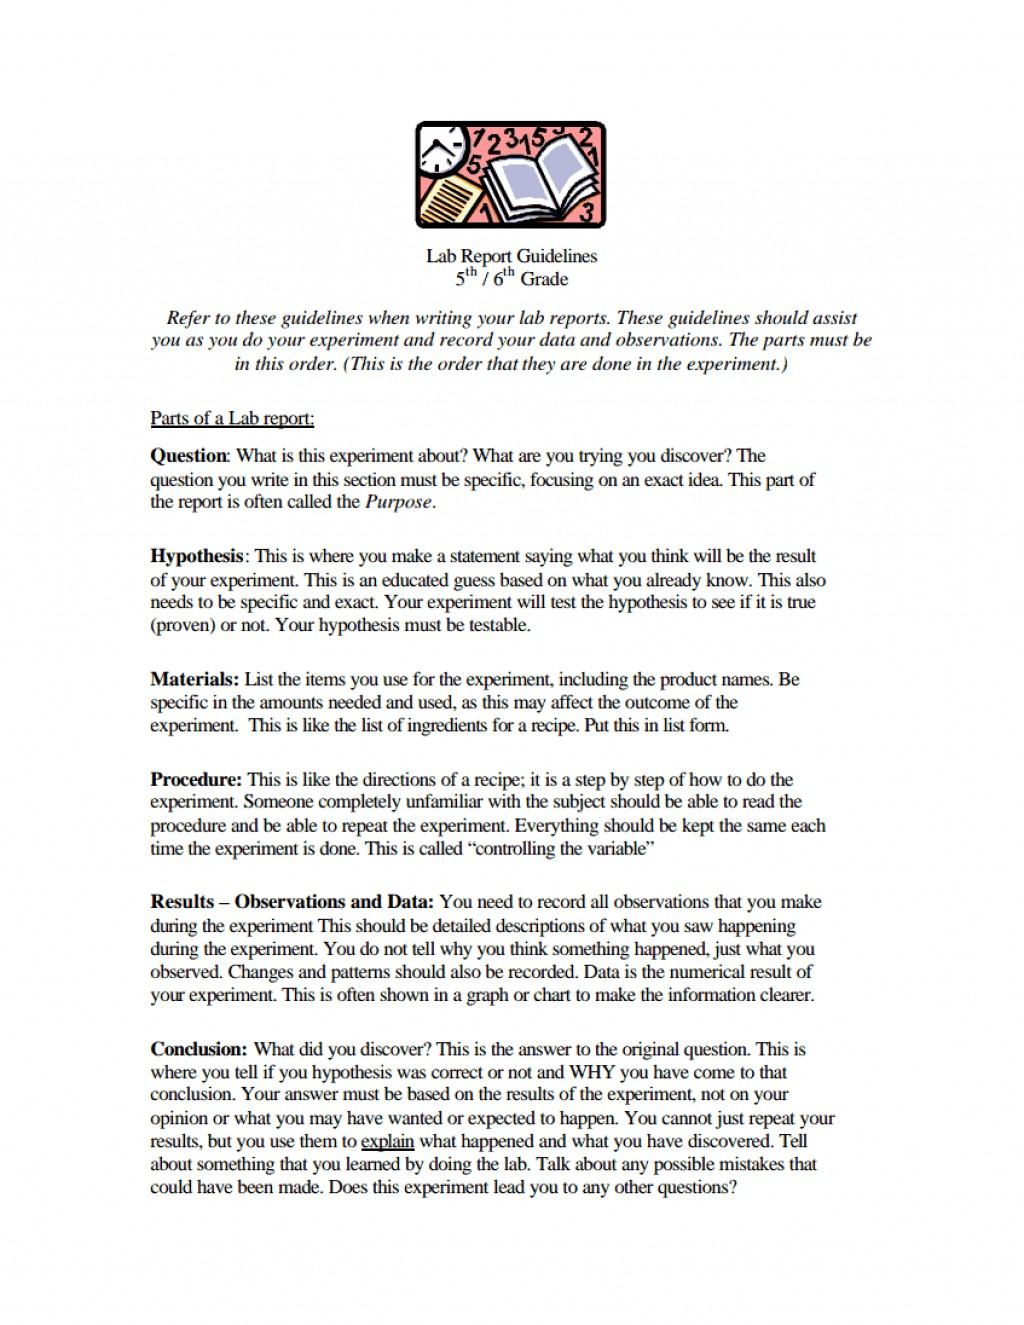 008 Research Paper Middle School Science Fair Template Frightening Large